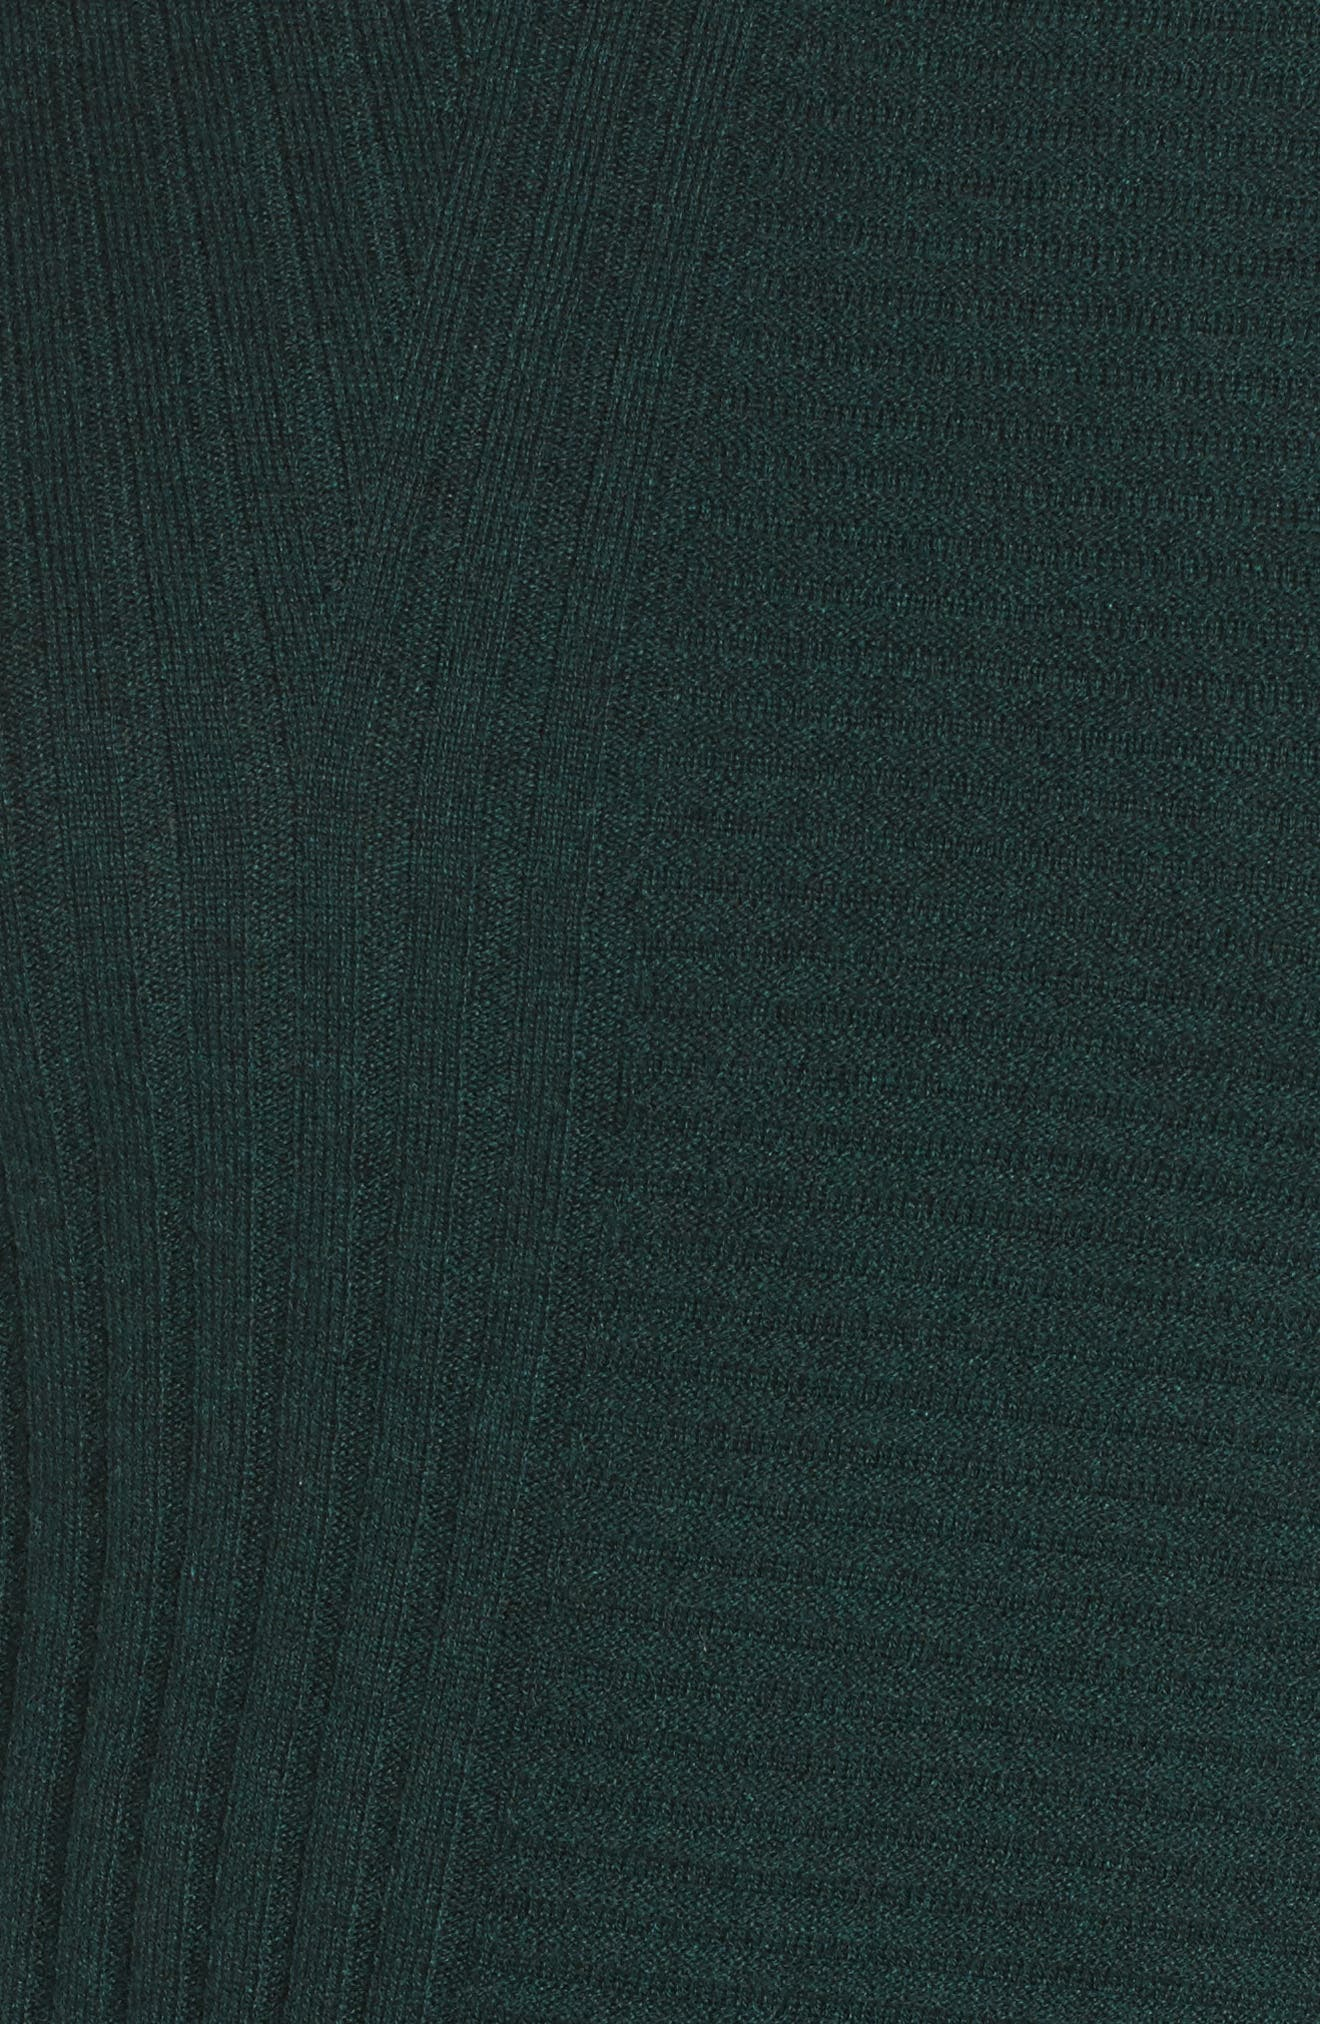 Ribbed Cashmere Sweater,                             Alternate thumbnail 5, color,                             390